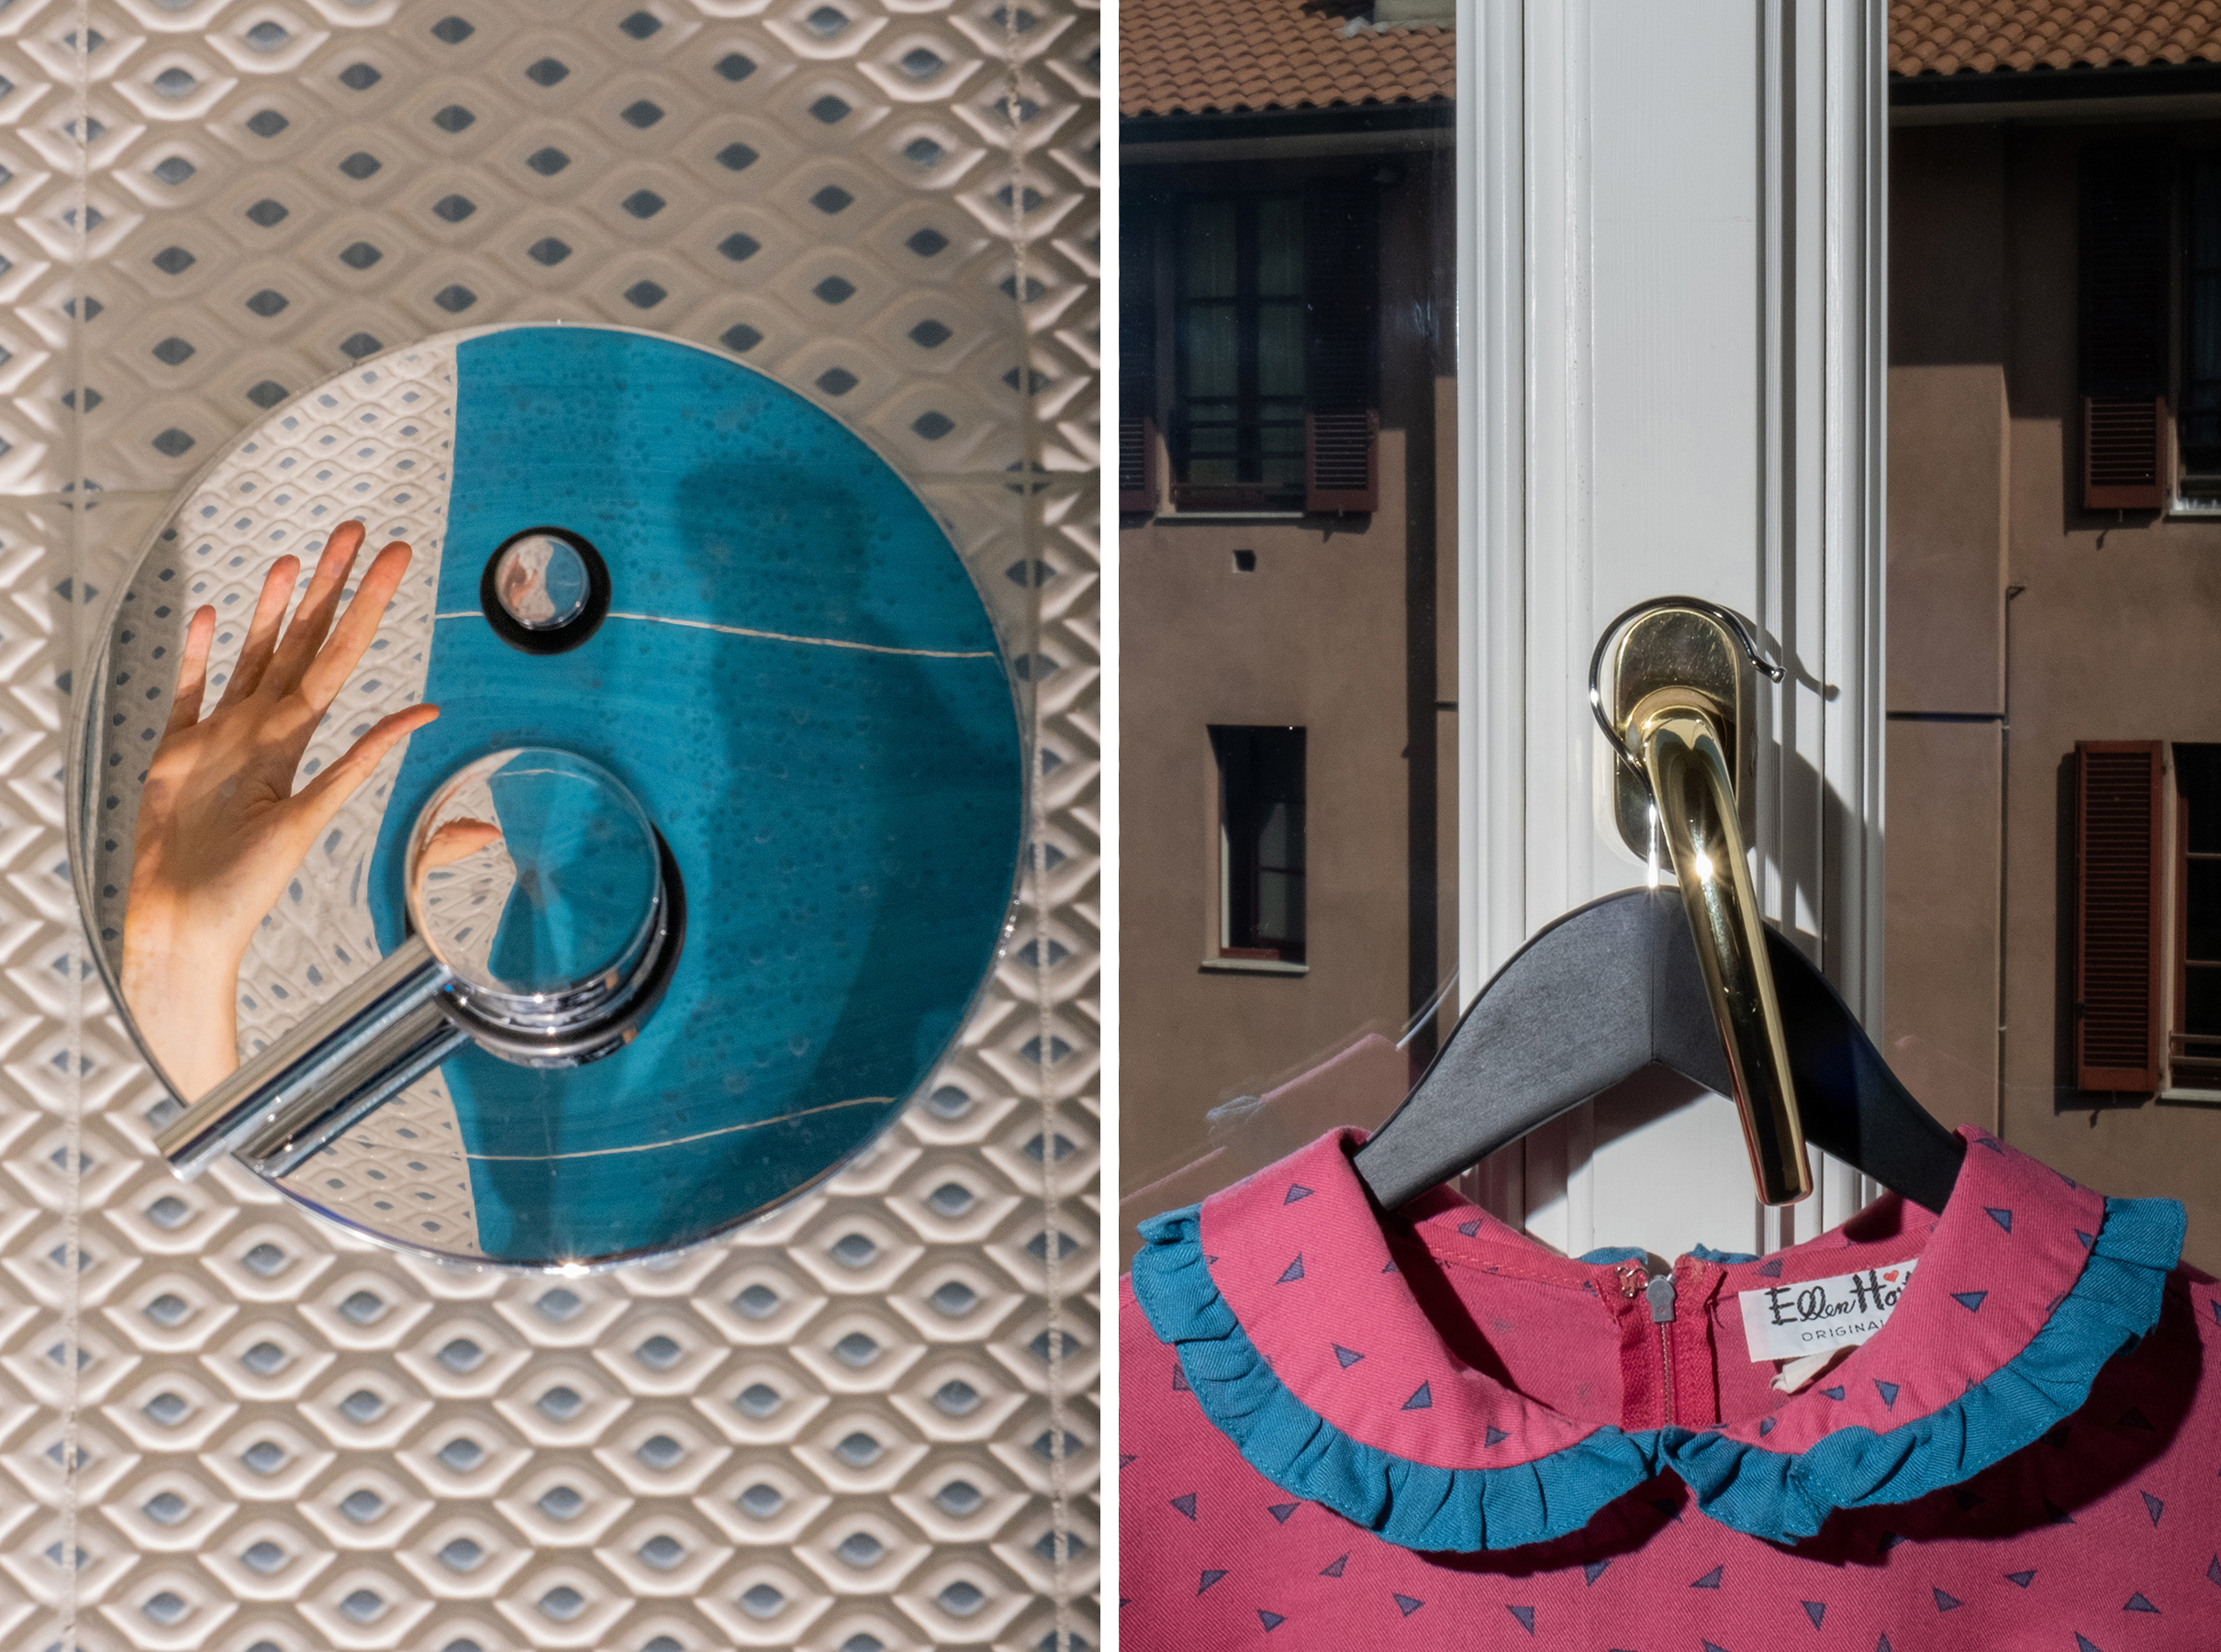 Left: 11:50 A.M. Bathroom details; Right: 12:36 P.M. Detail of a dress on the bedroom window